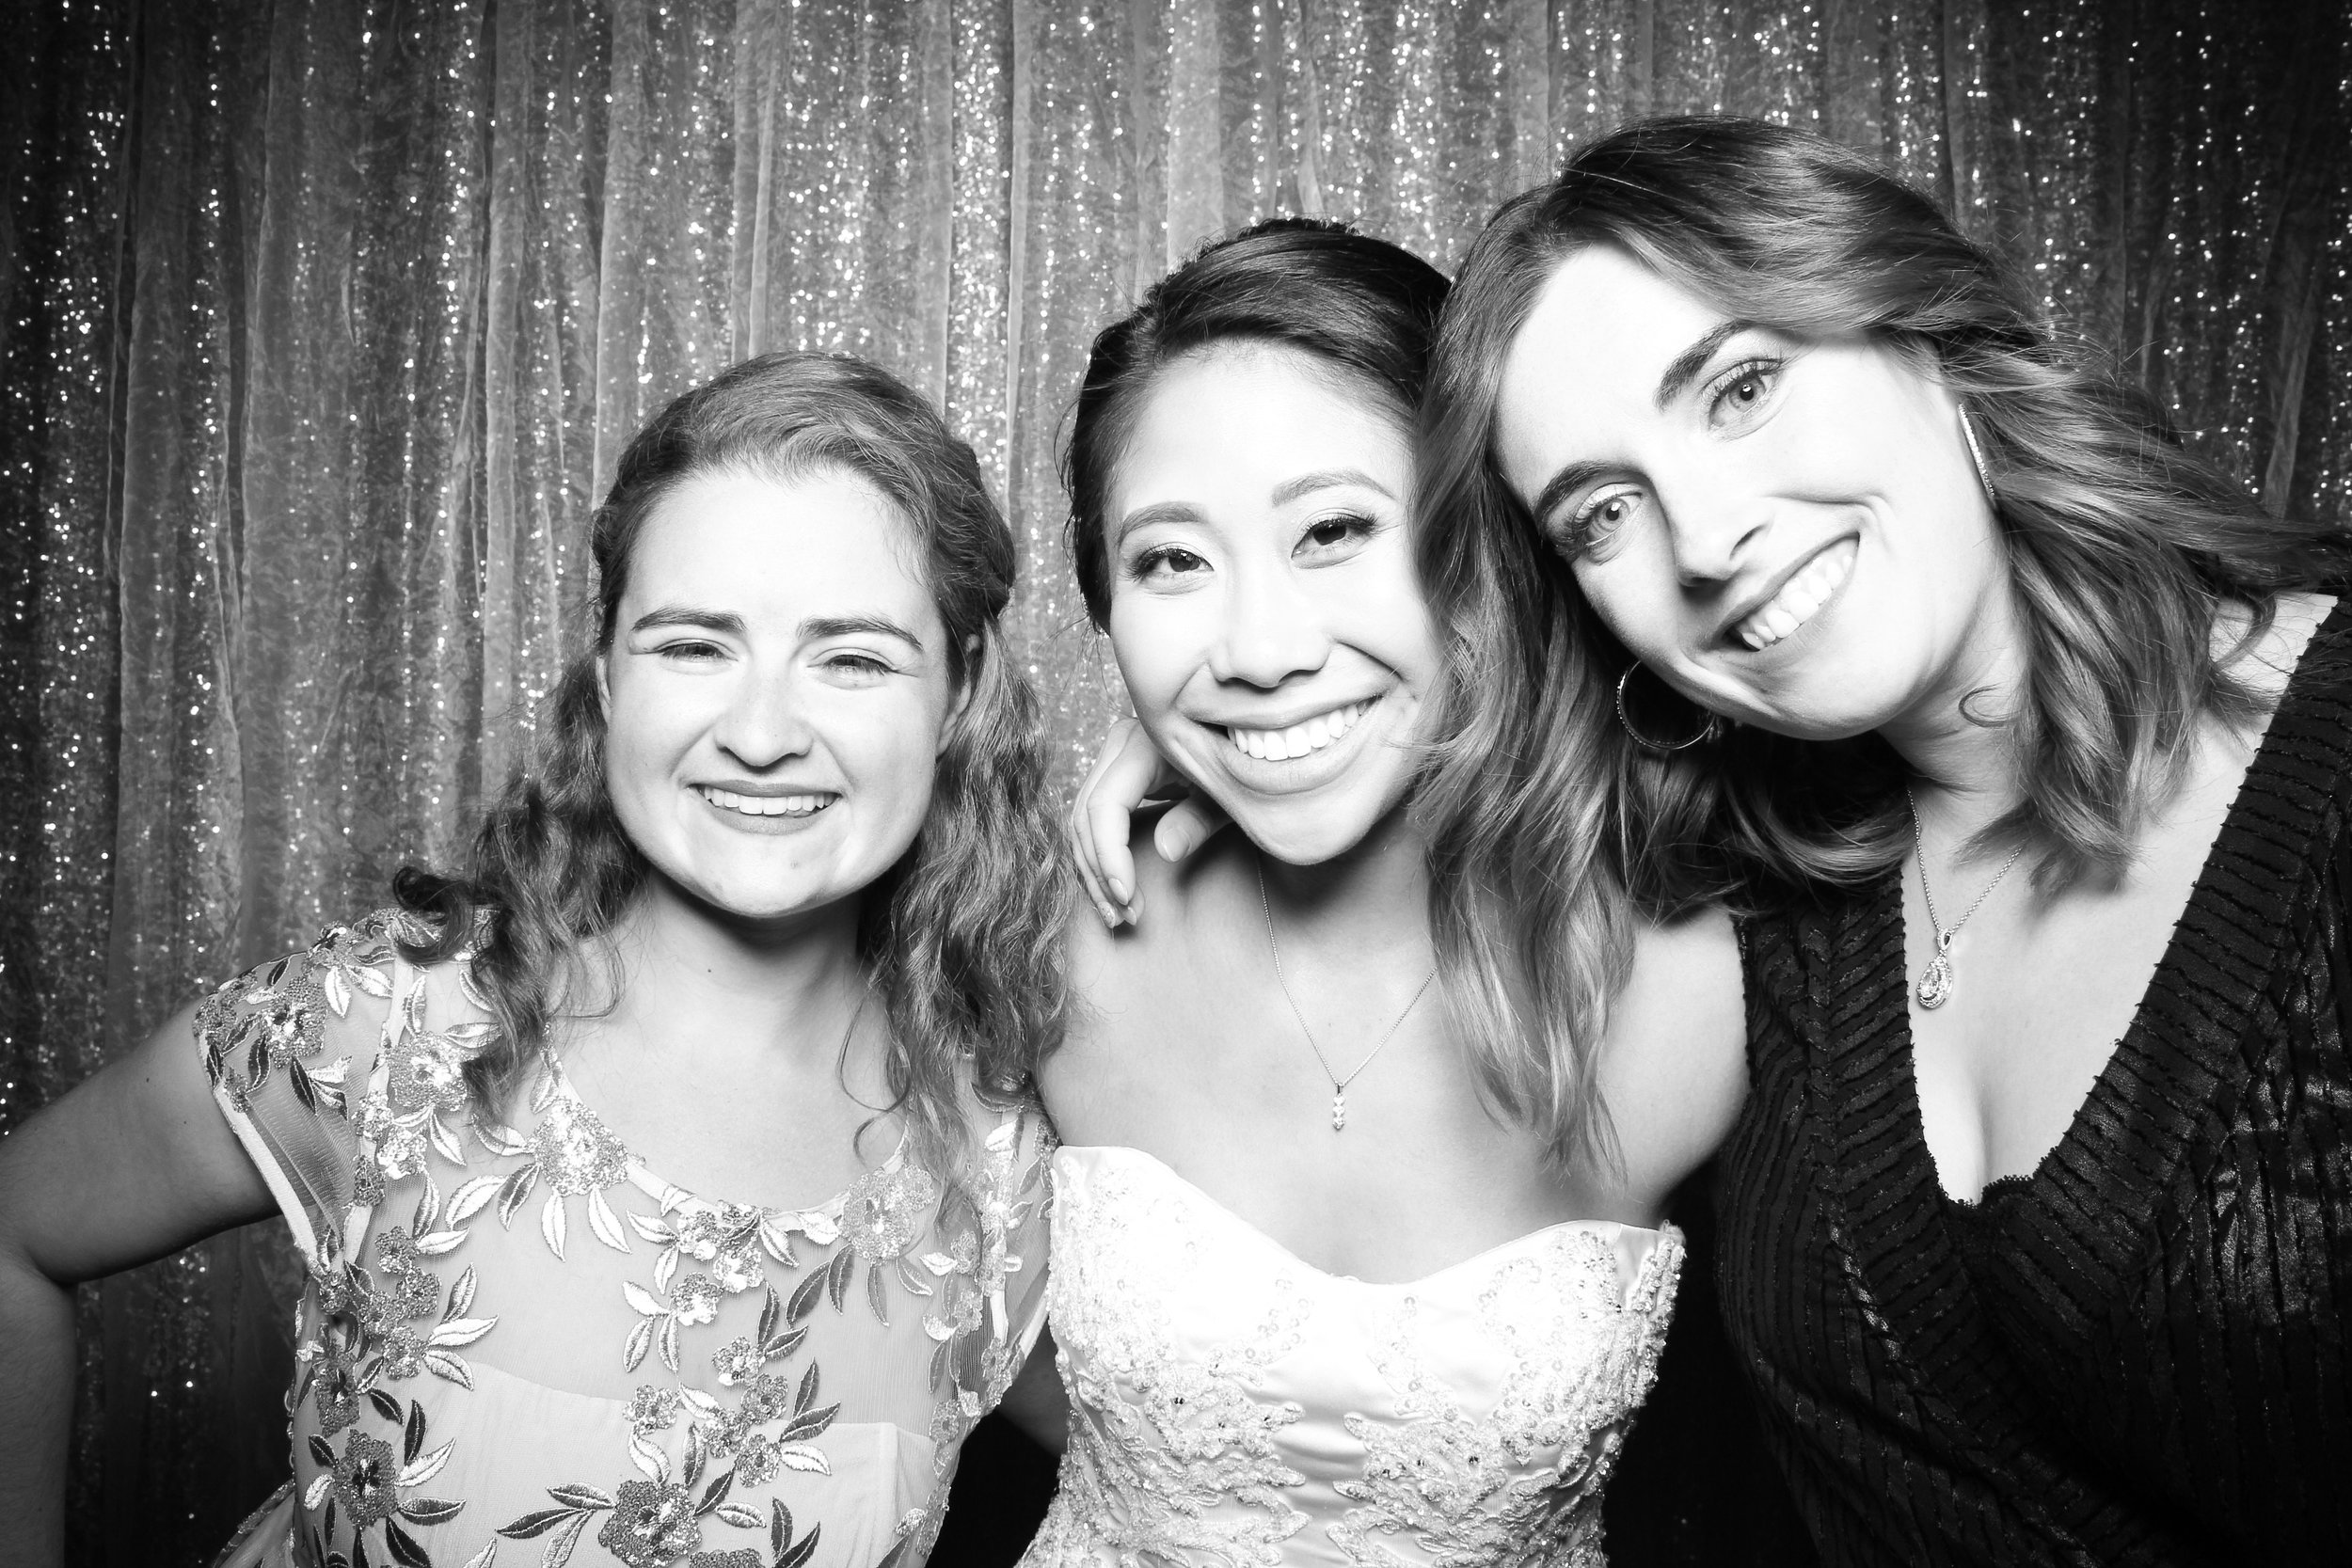 Chicago_Vintage_Wedding_Photobooth_Glen_Club_23.jpg